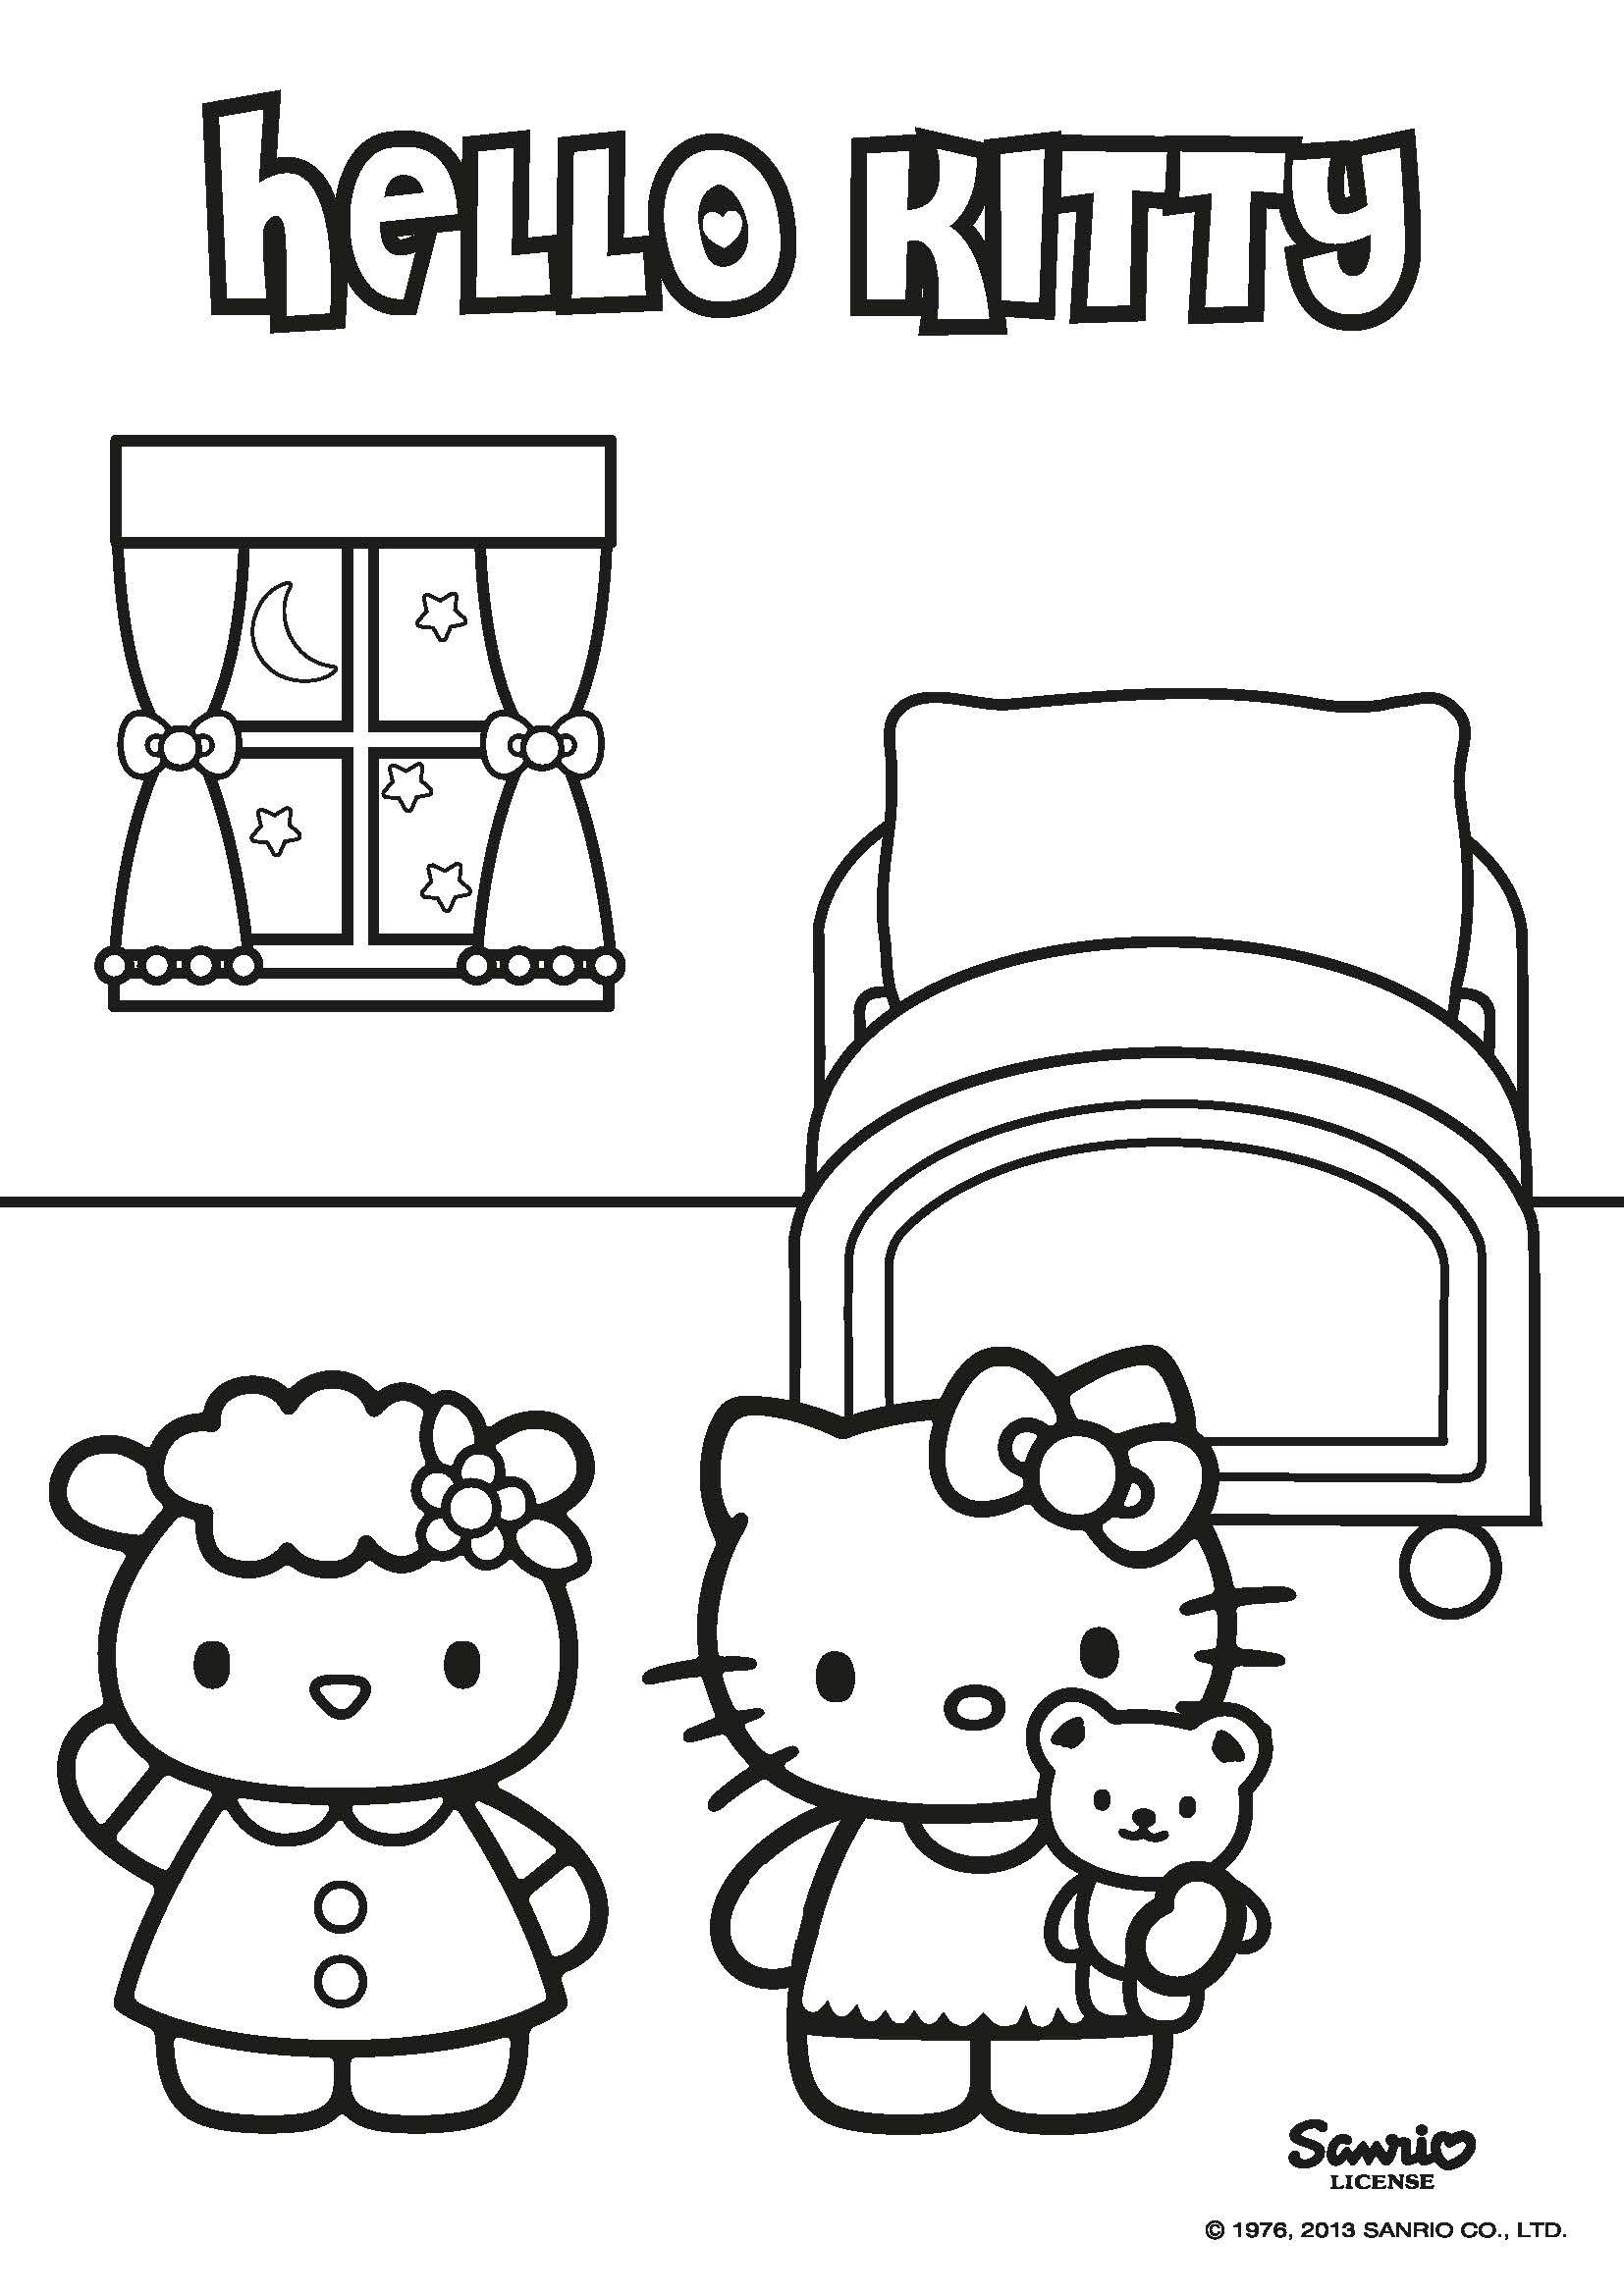 Hello Kitty Characters Coloring Pages | moshi monsters rox maker ...